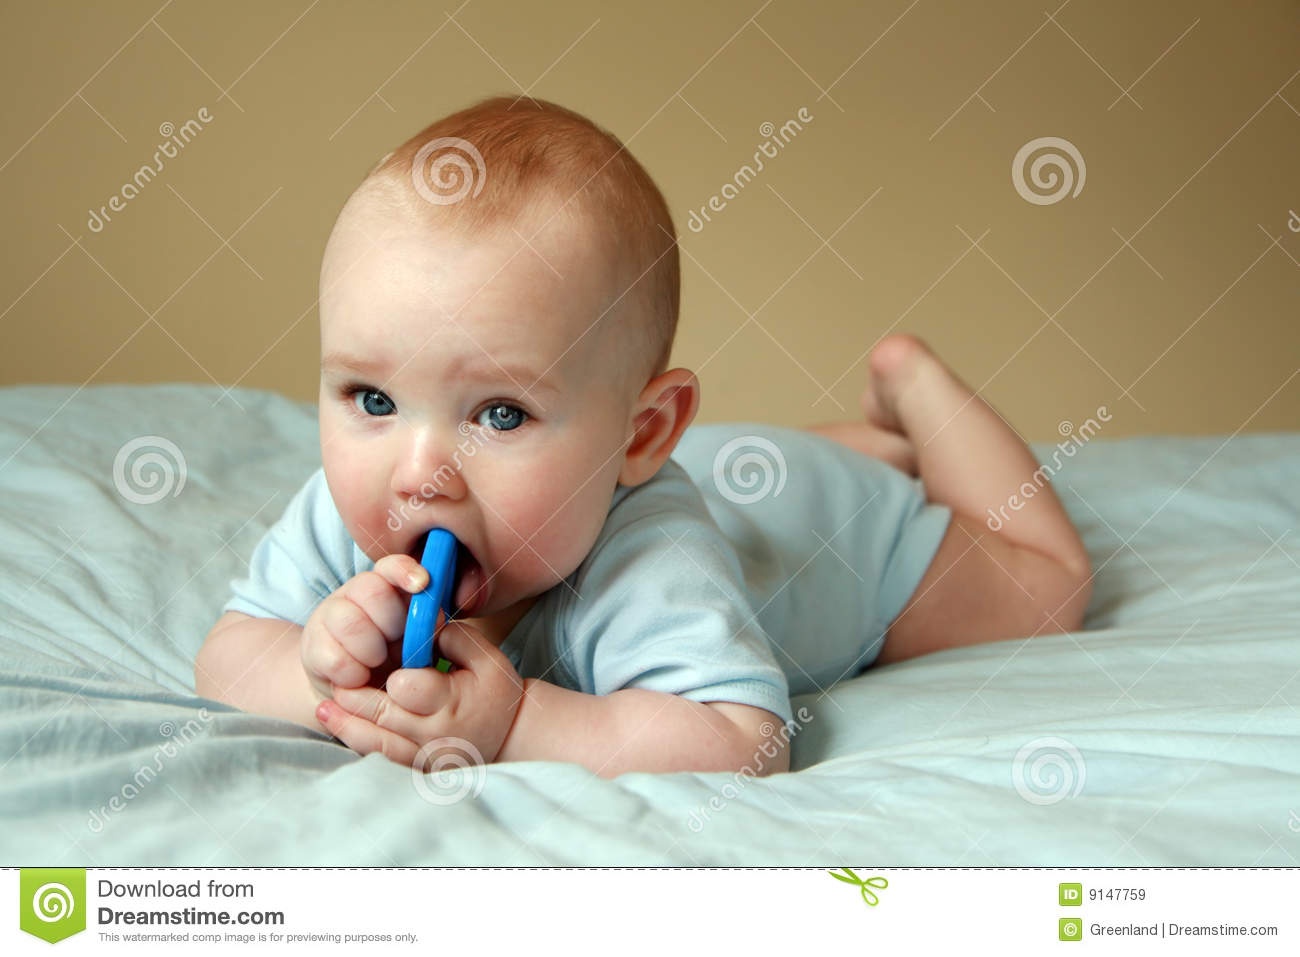 ... of six months old sweet baby. A beautiful baby playing with rattle